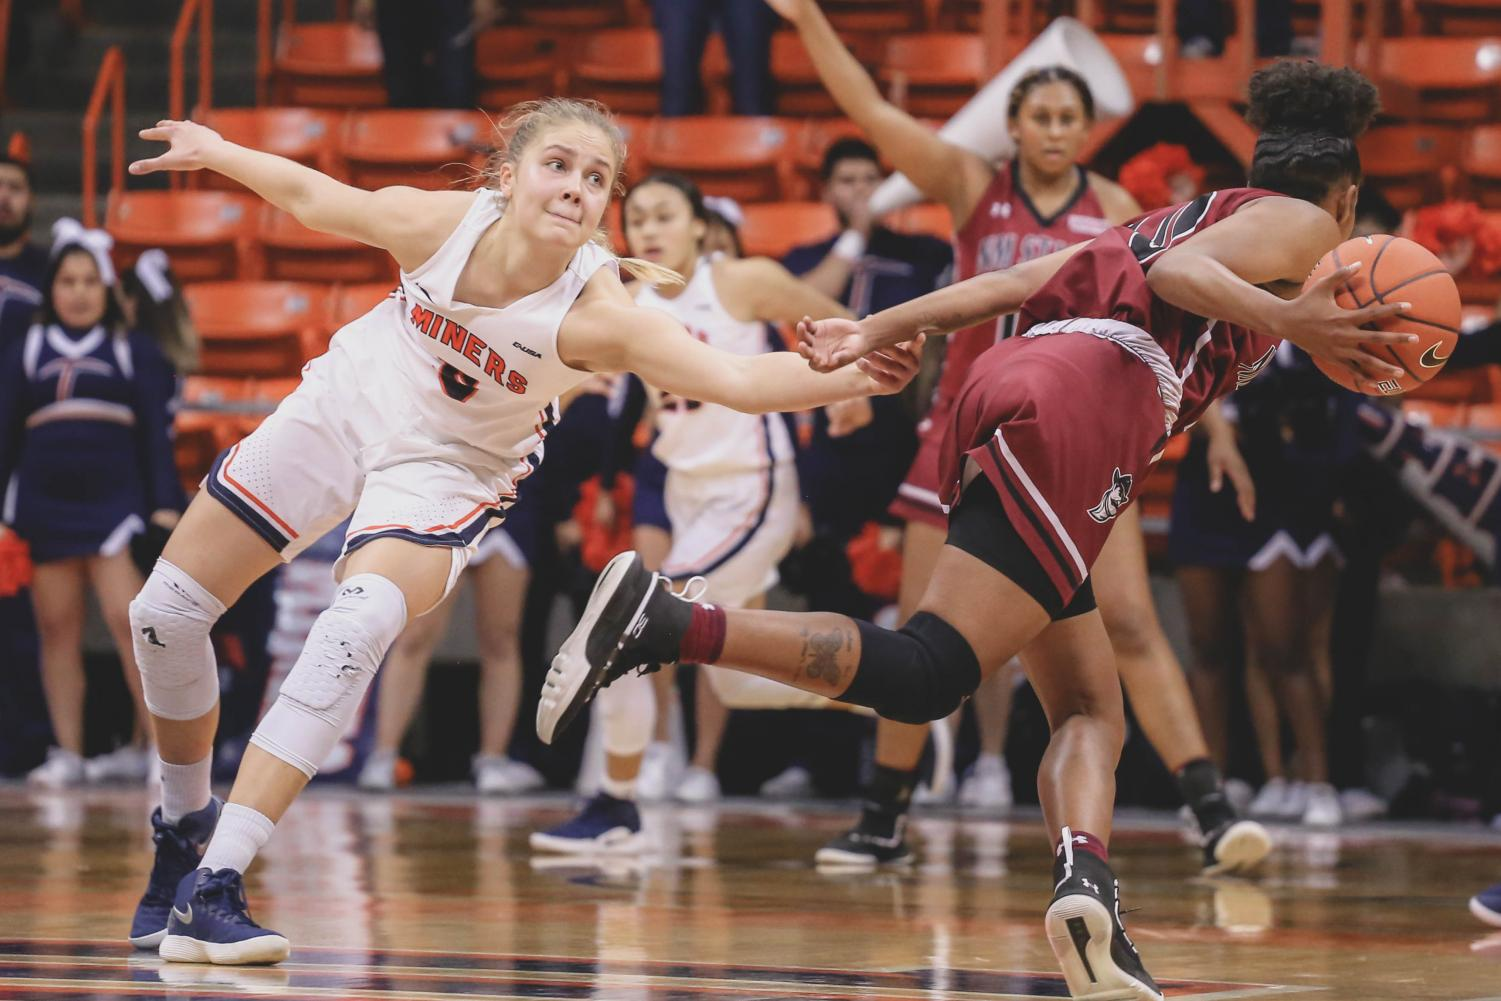 Junior forward Zuzanna Puc  attempts to NMSat a game against the NMSU Aggies on Saturday, Nov. 17. during the 4th quarter.